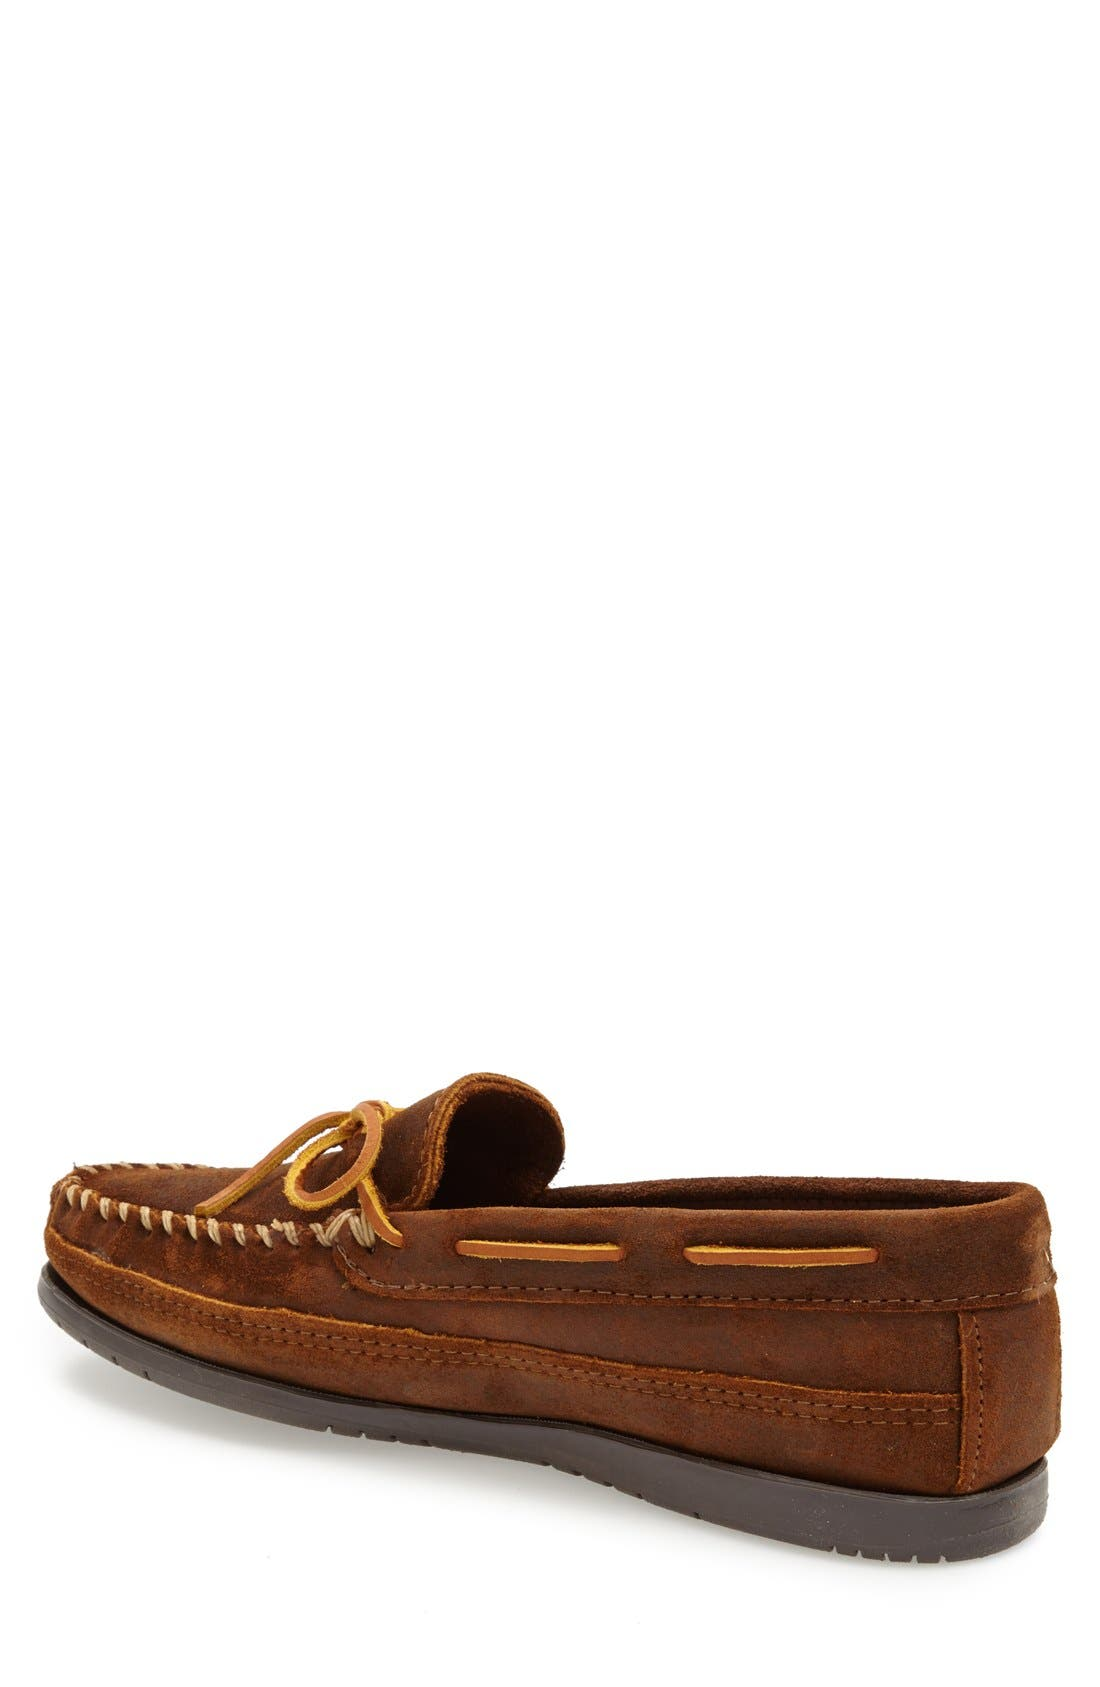 Leather Moccasin,                             Alternate thumbnail 2, color,                             Brown Ruff